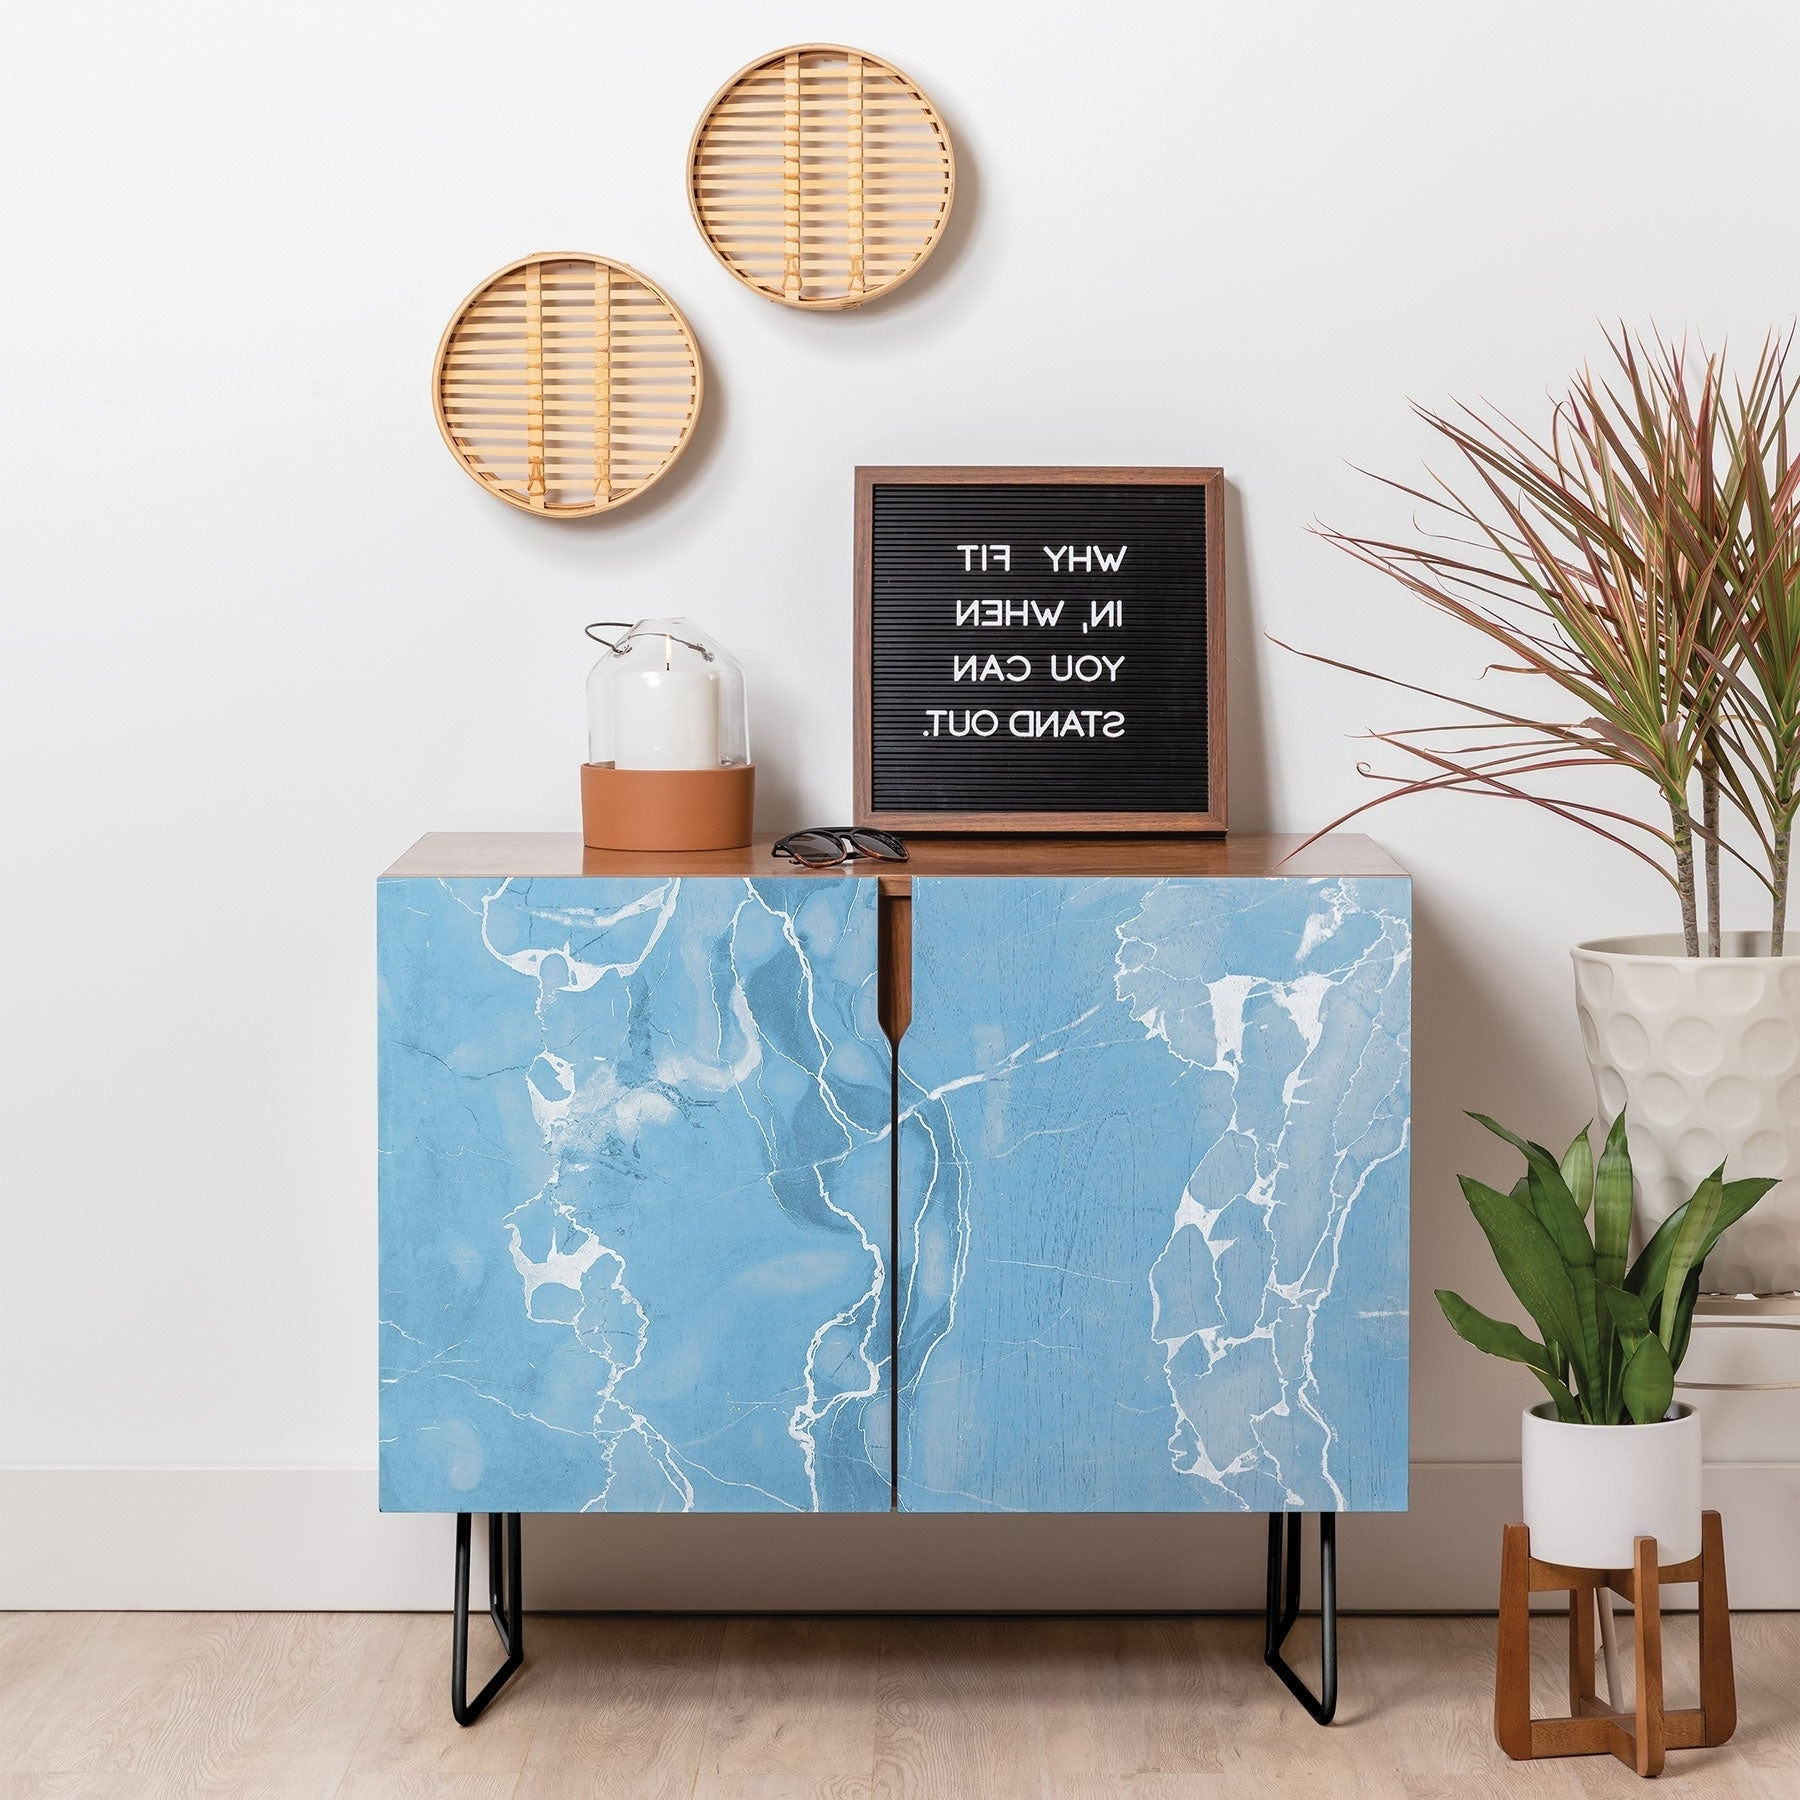 Deny Designs Blue Sky Marble Credenza (Birch Or Walnut, 2 Leg Options) Intended For Ocean Marble Credenzas (View 4 of 20)